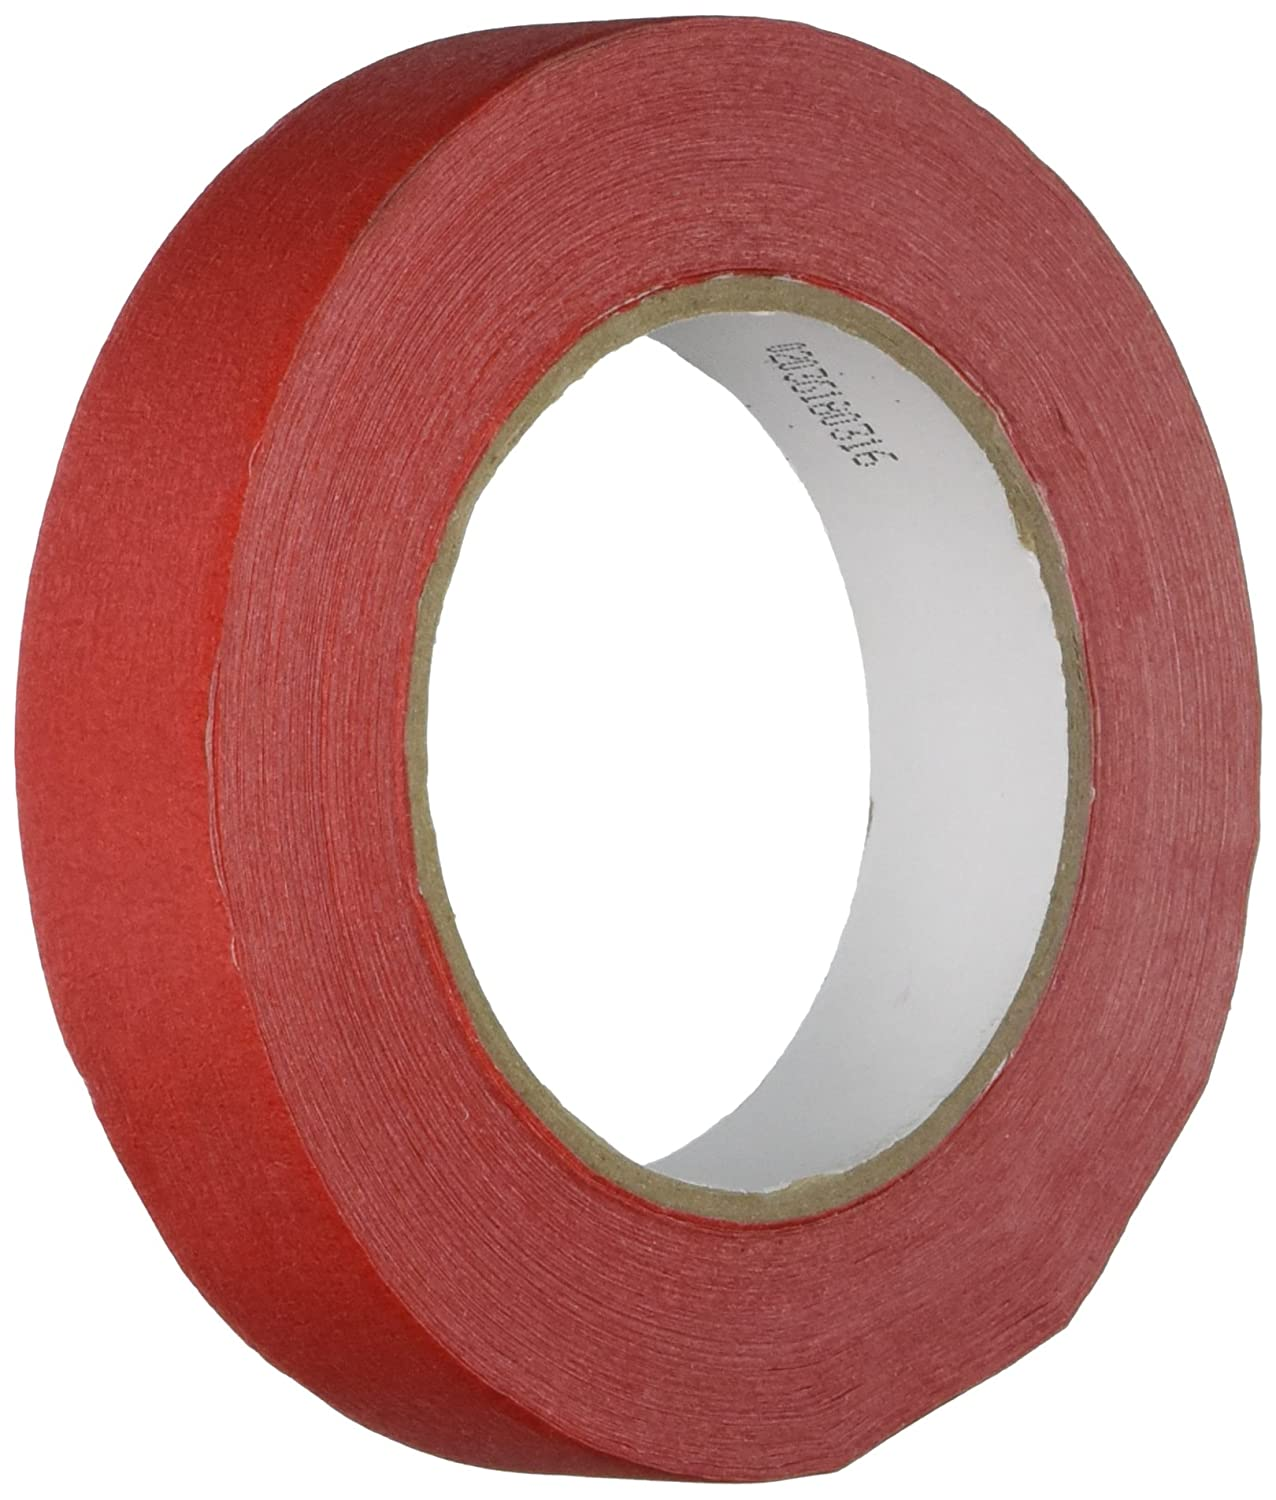 Red Chenille Kraft AC4851 Self-Adhesive Colored Masking Tape with 3 Core 1 x 60 yd